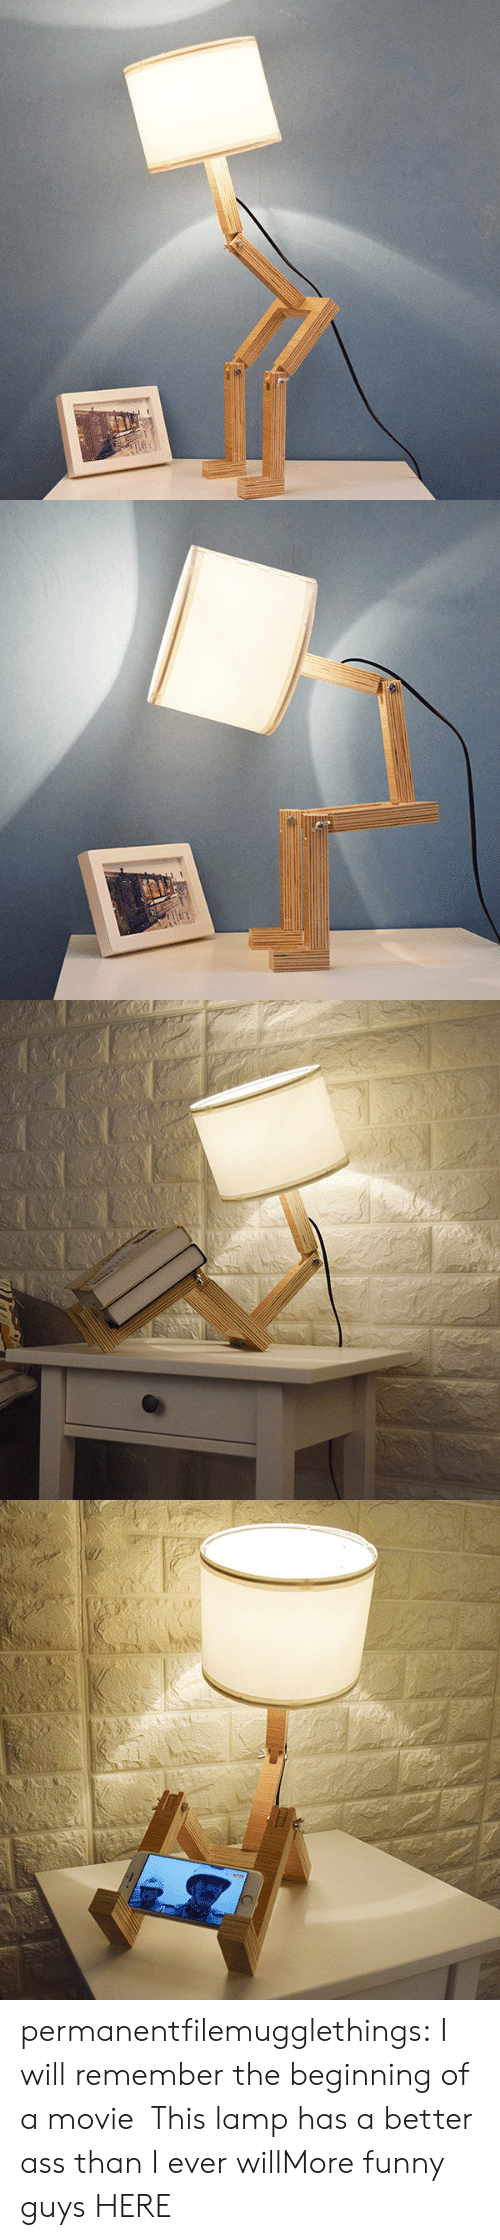 Ass, Funny, and Tumblr: 130C permanentfilemugglethings:  I will remember the beginning of a movie,This lamp has a better ass than I ever willMore funny guys HERE:)